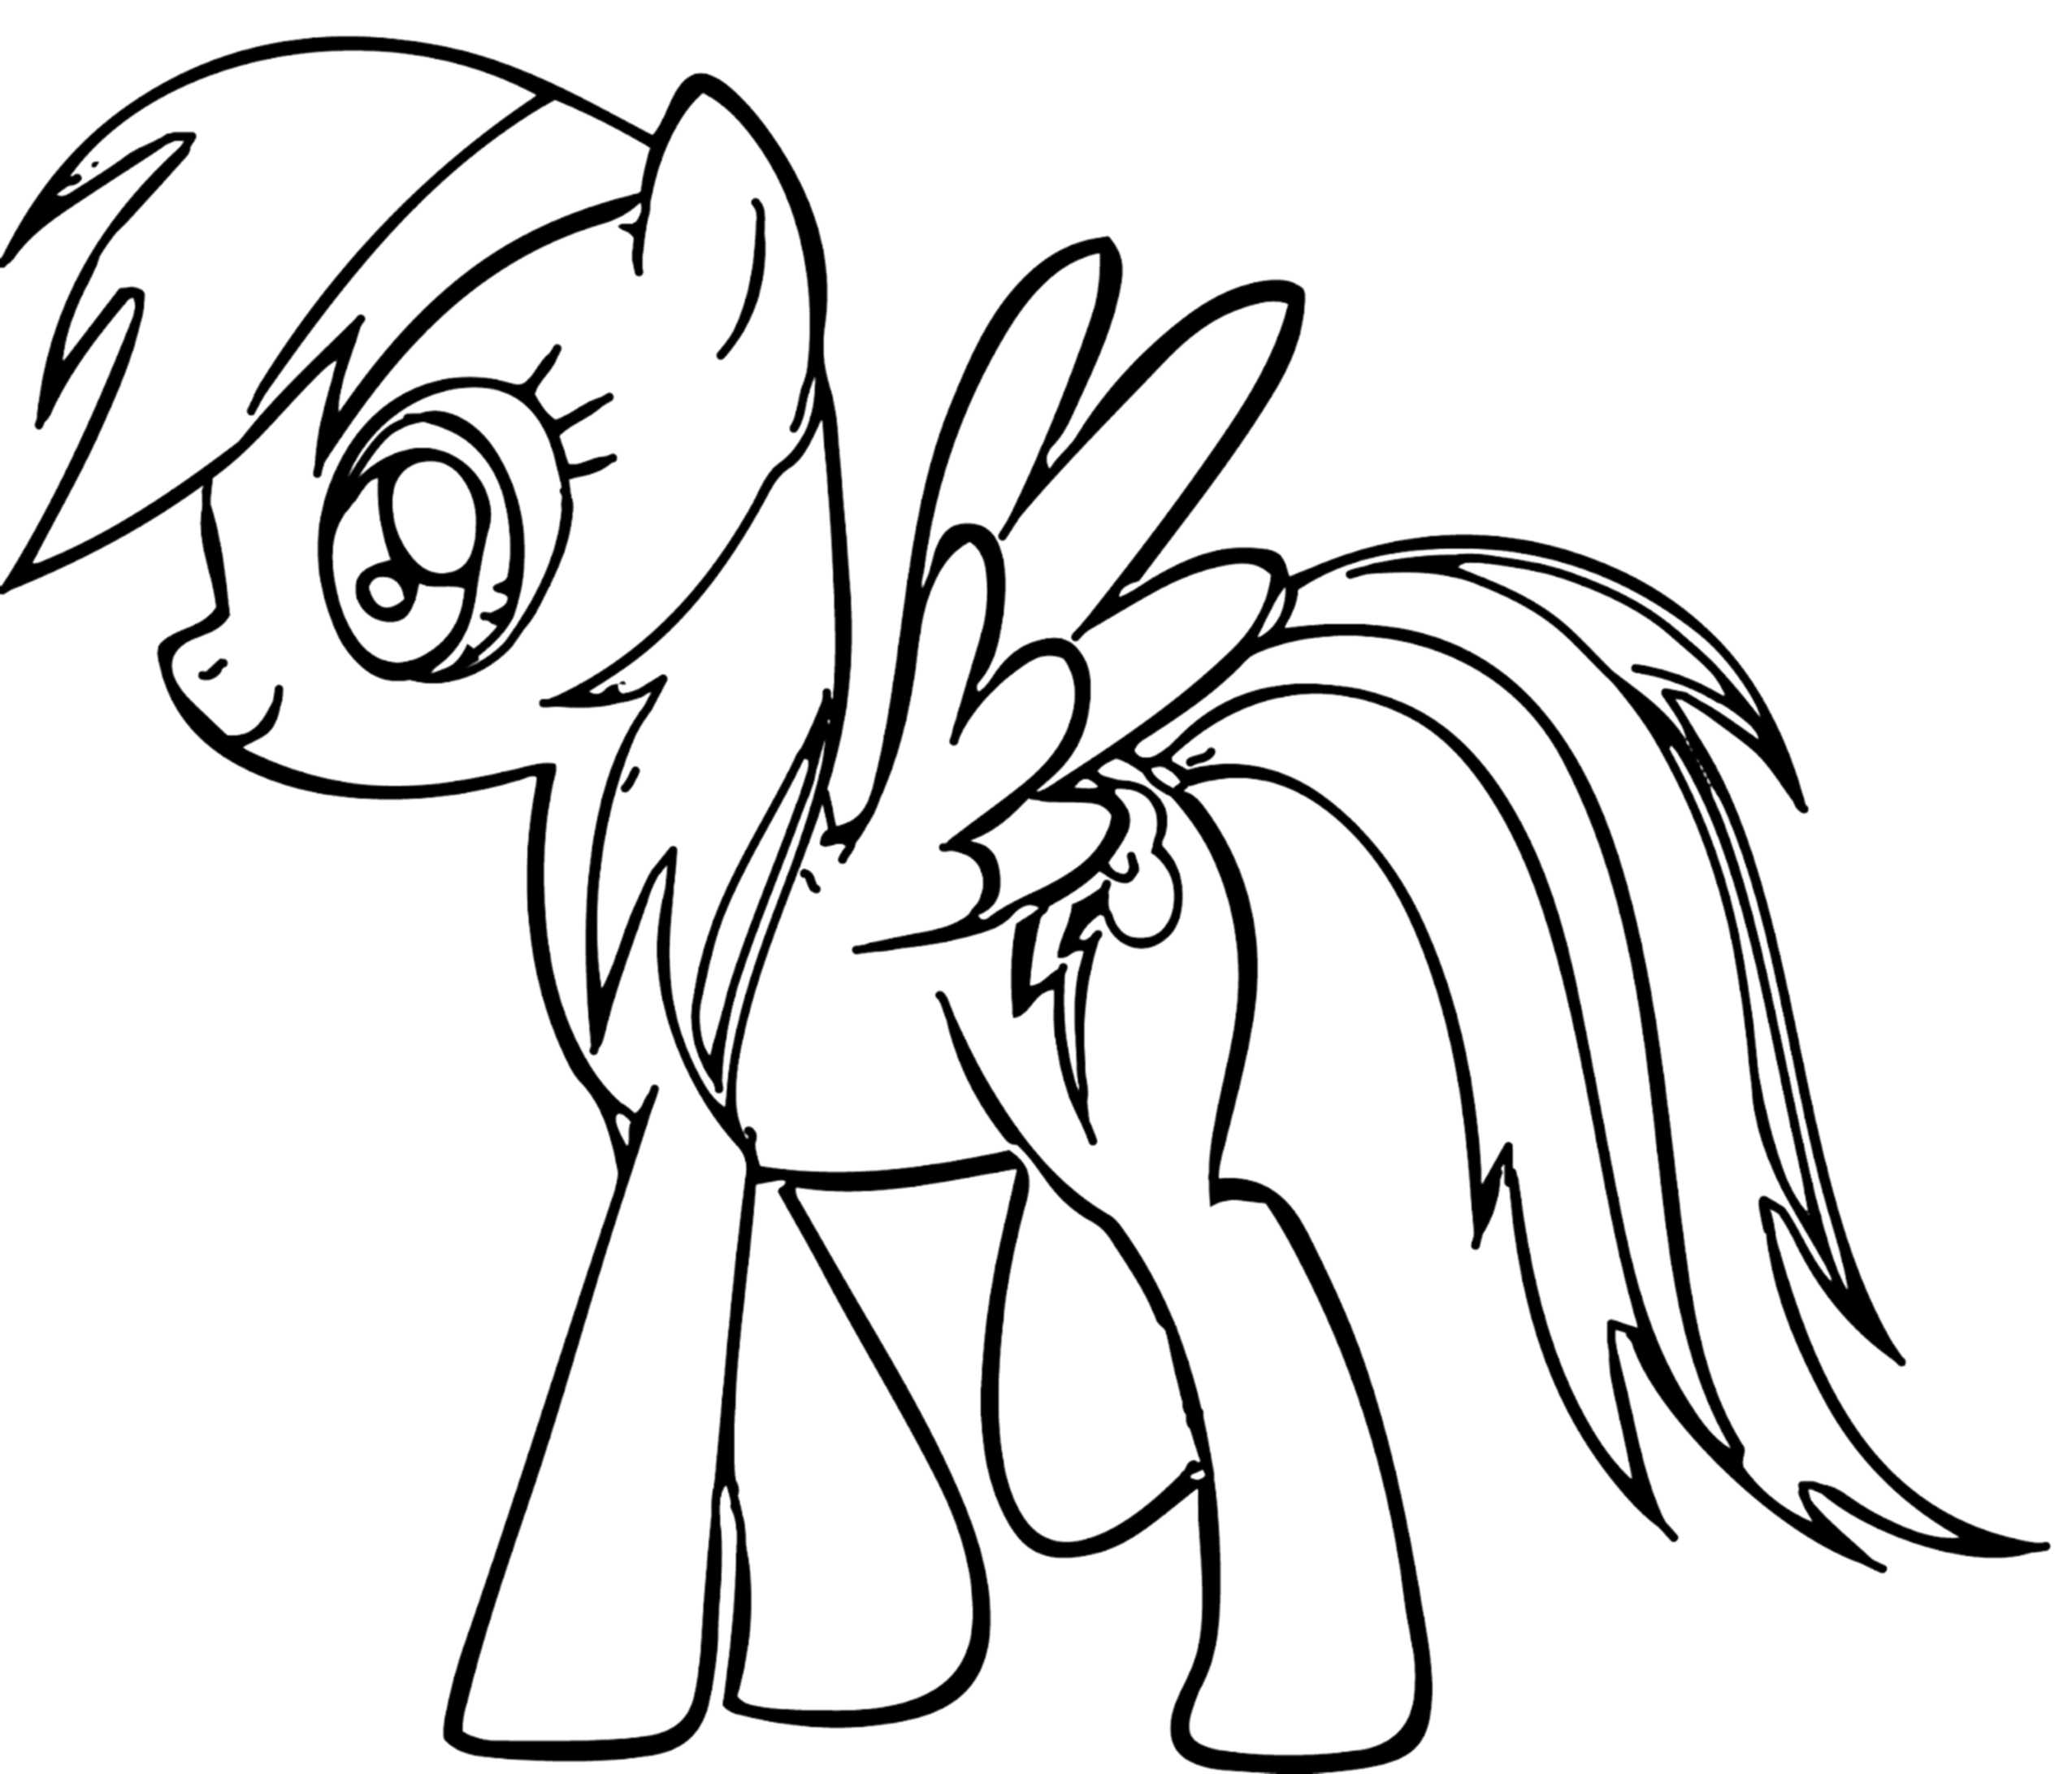 Rainbow Dash Pictures To Print Rainbow Dash Coloring Pages Best Coloring Pages For Kids